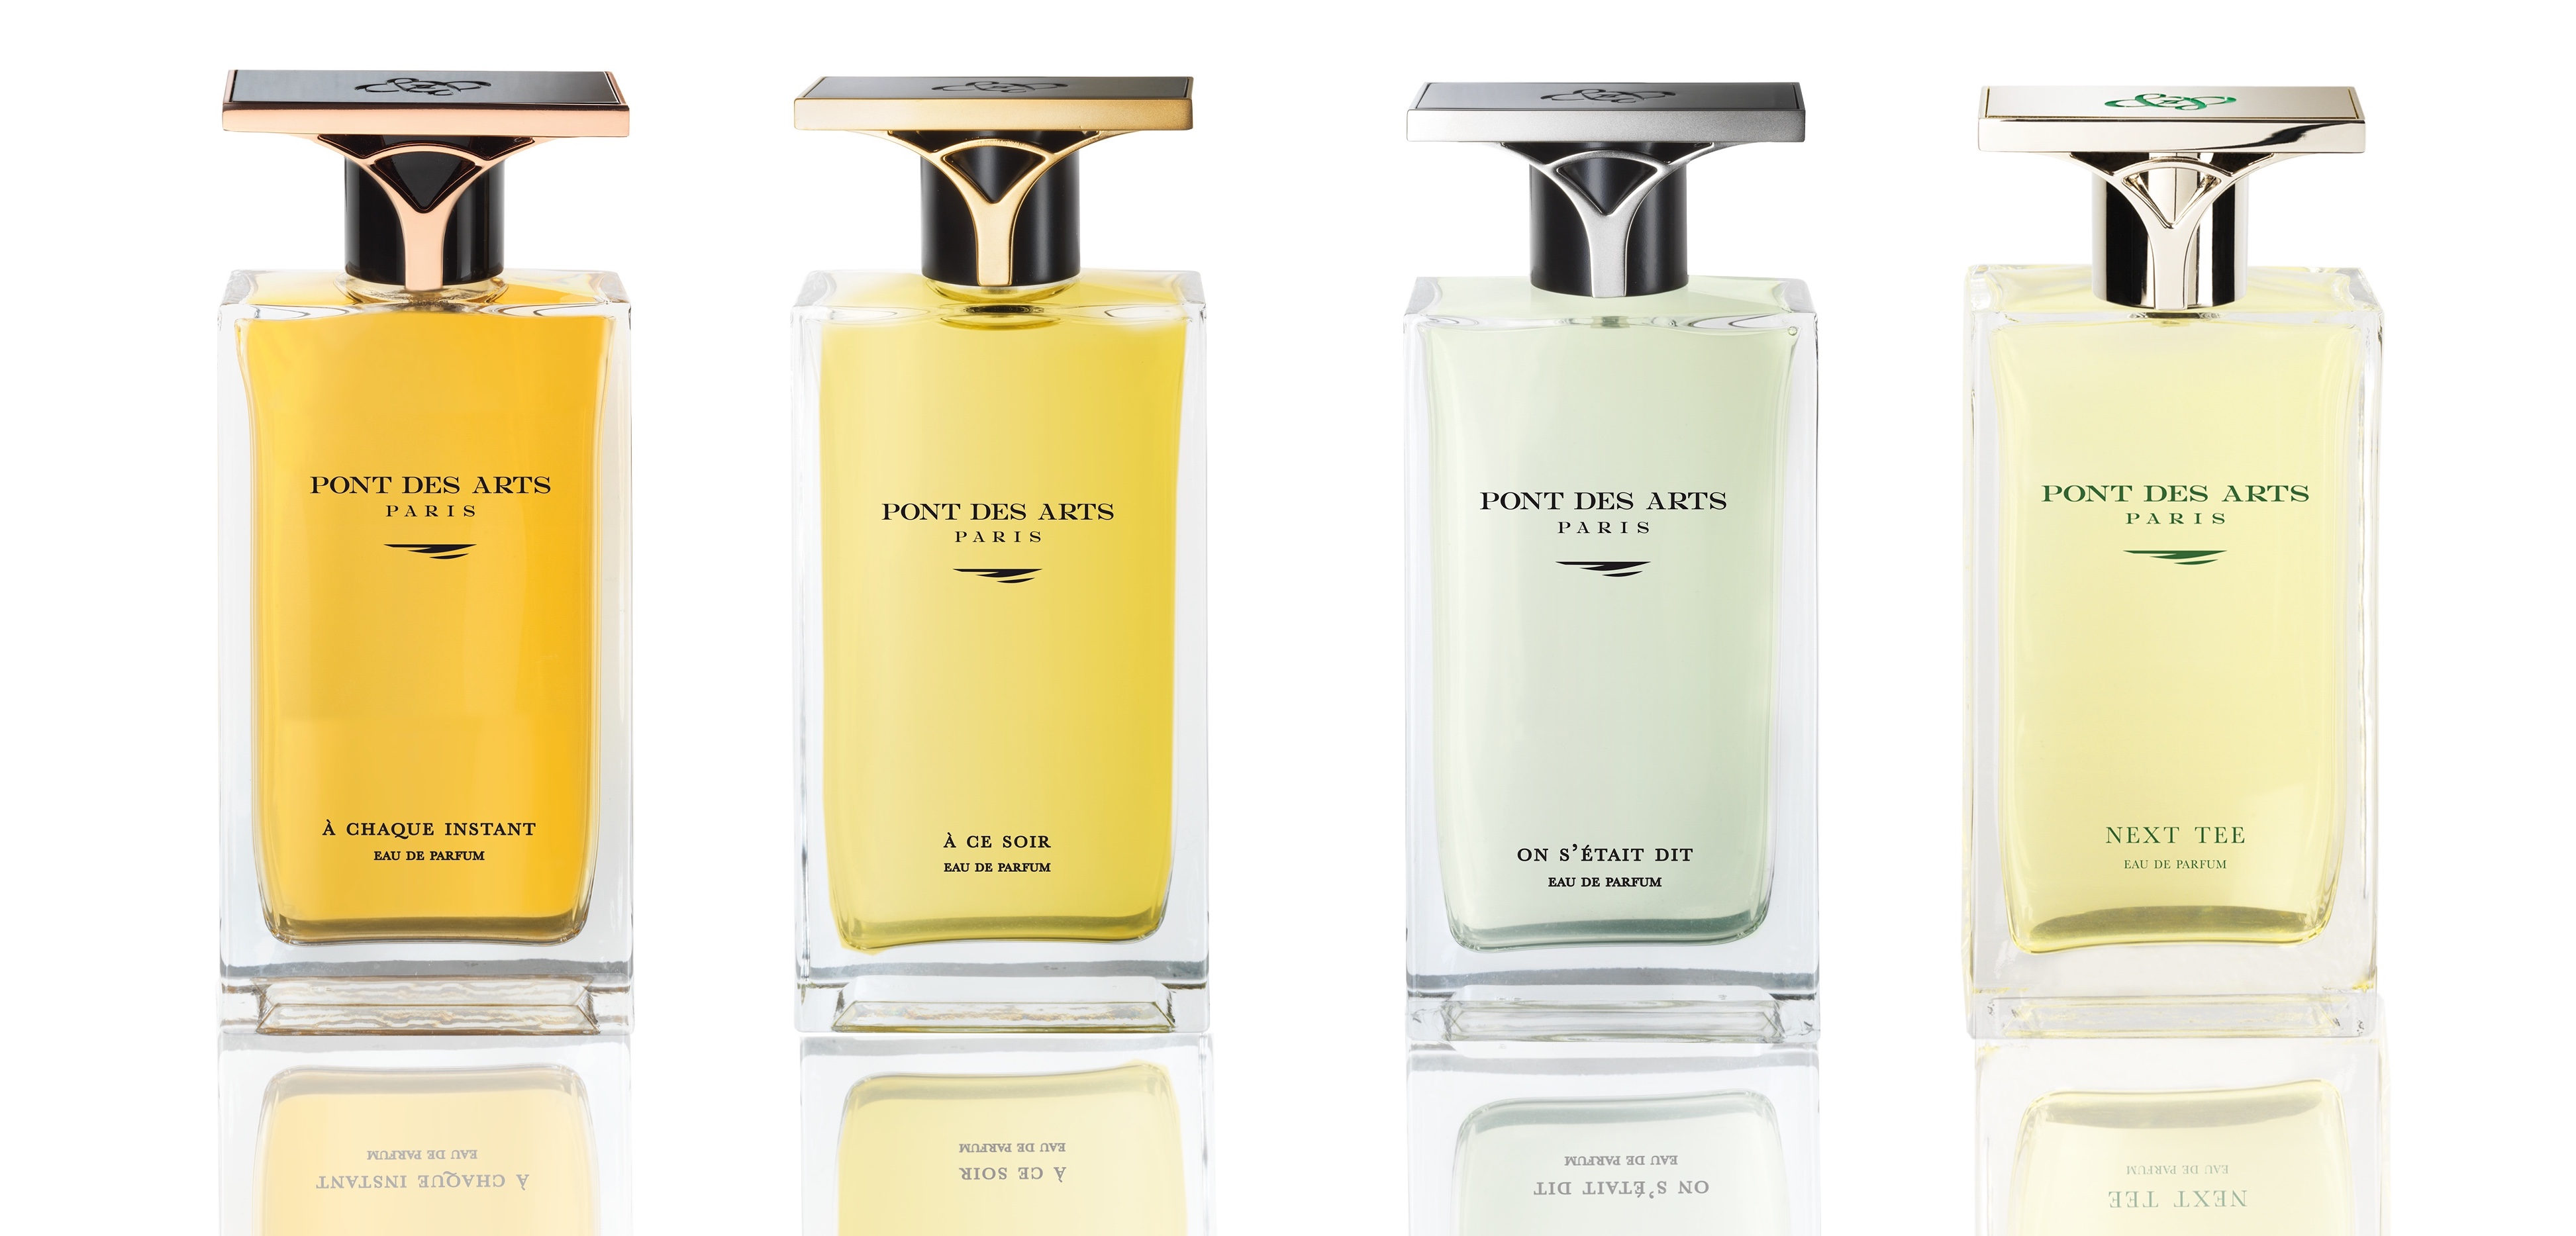 La collection de parfums d'auteurs Pont des Arts Paris